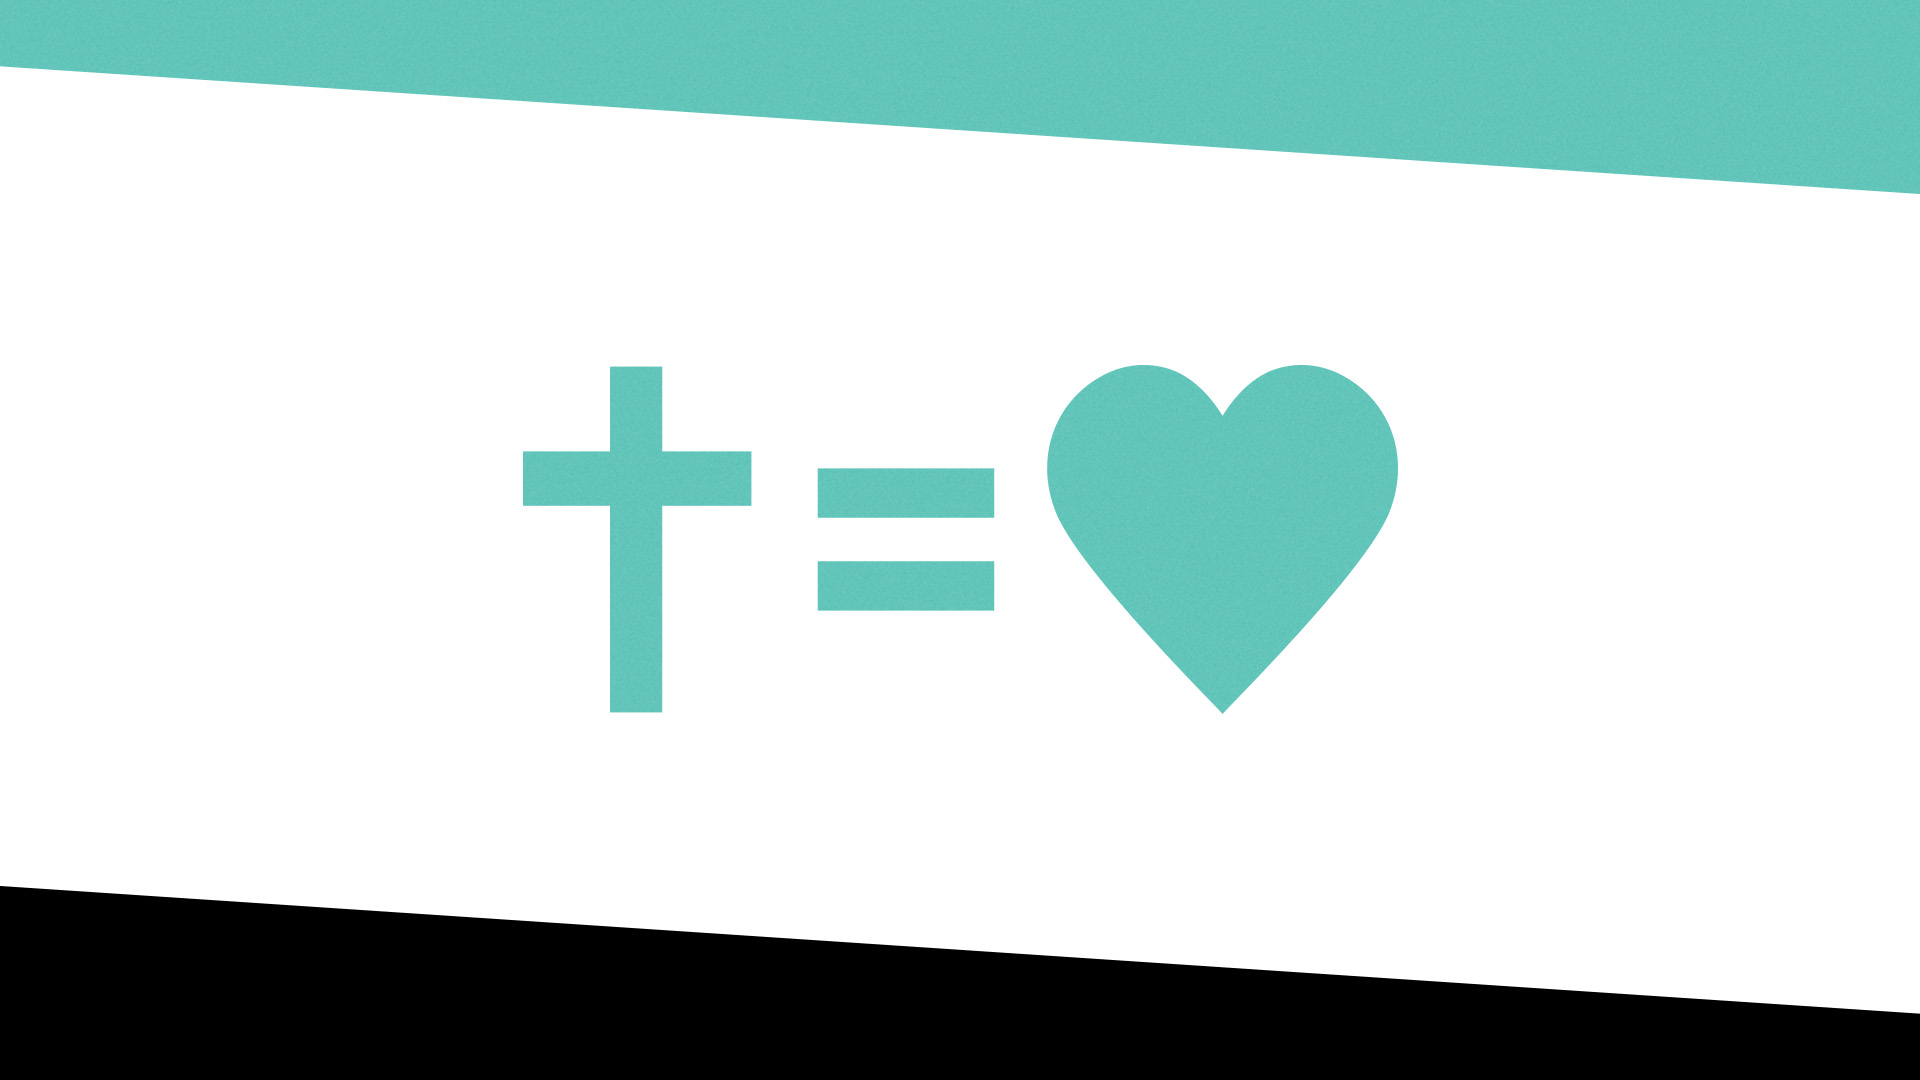 The Cross Equals Love